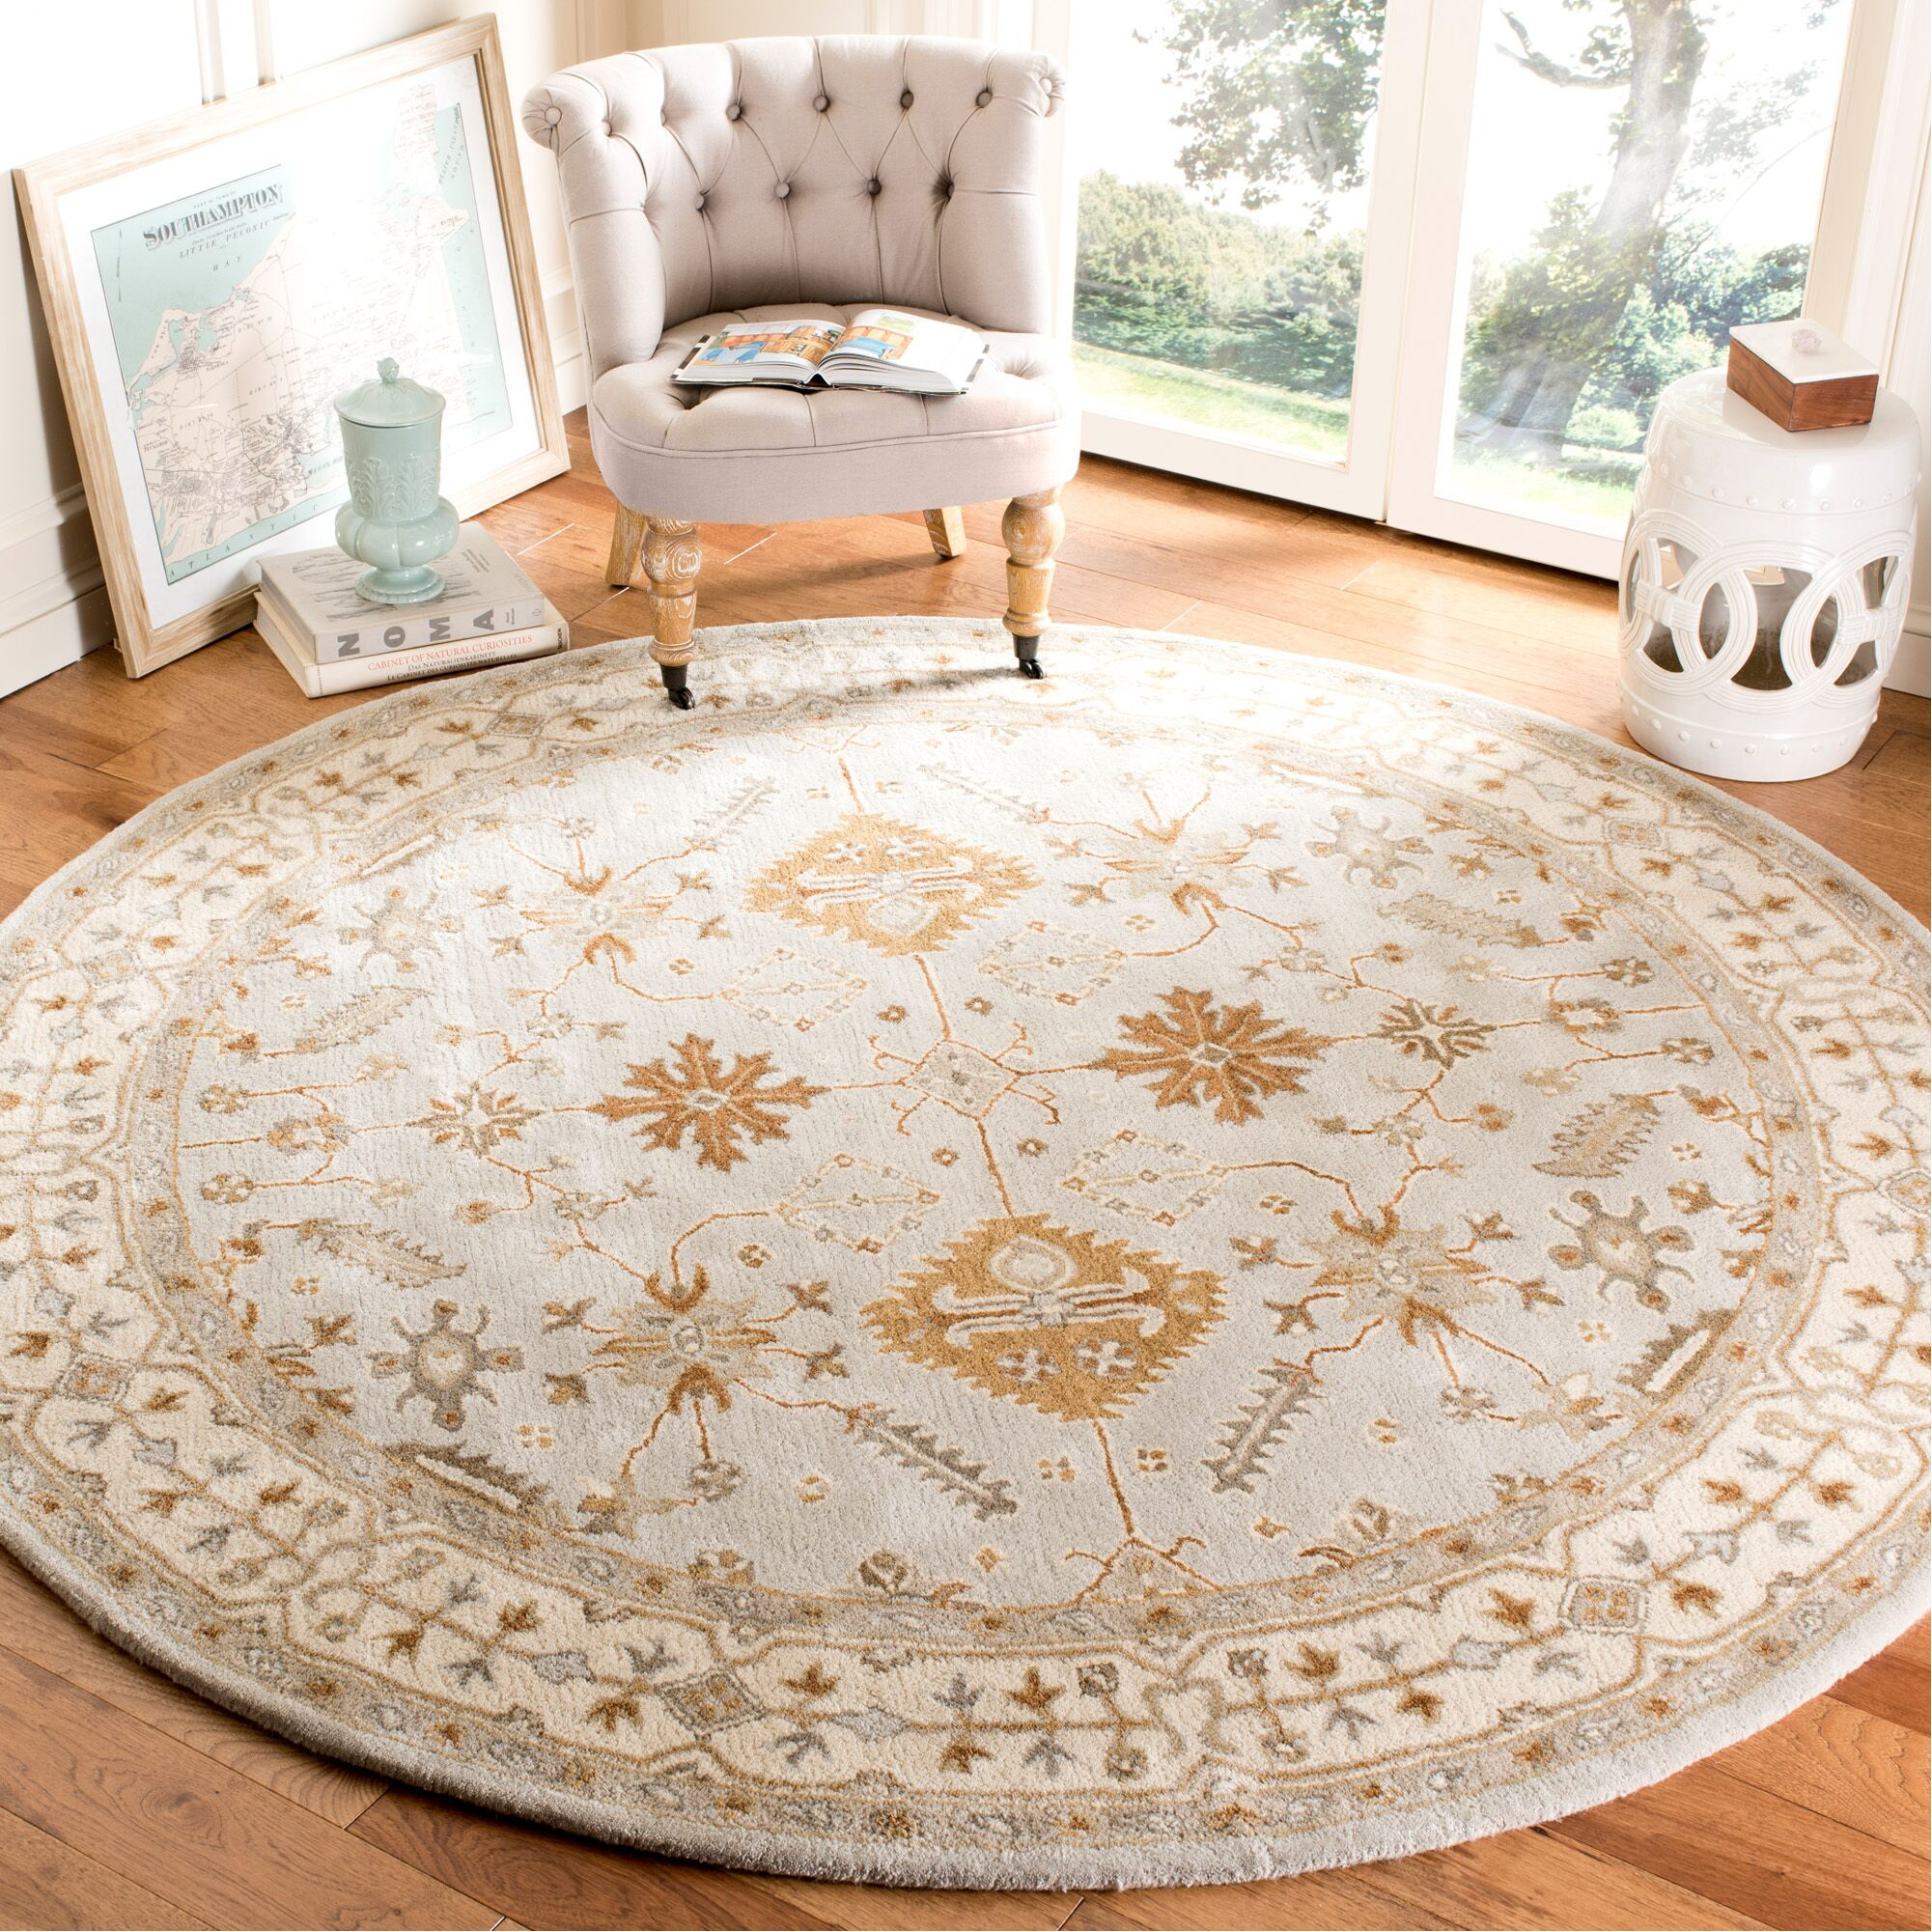 Colliers Hand-Tufted Wool Light Gray/Cream Area Rug Rug Size: Runner 2'3